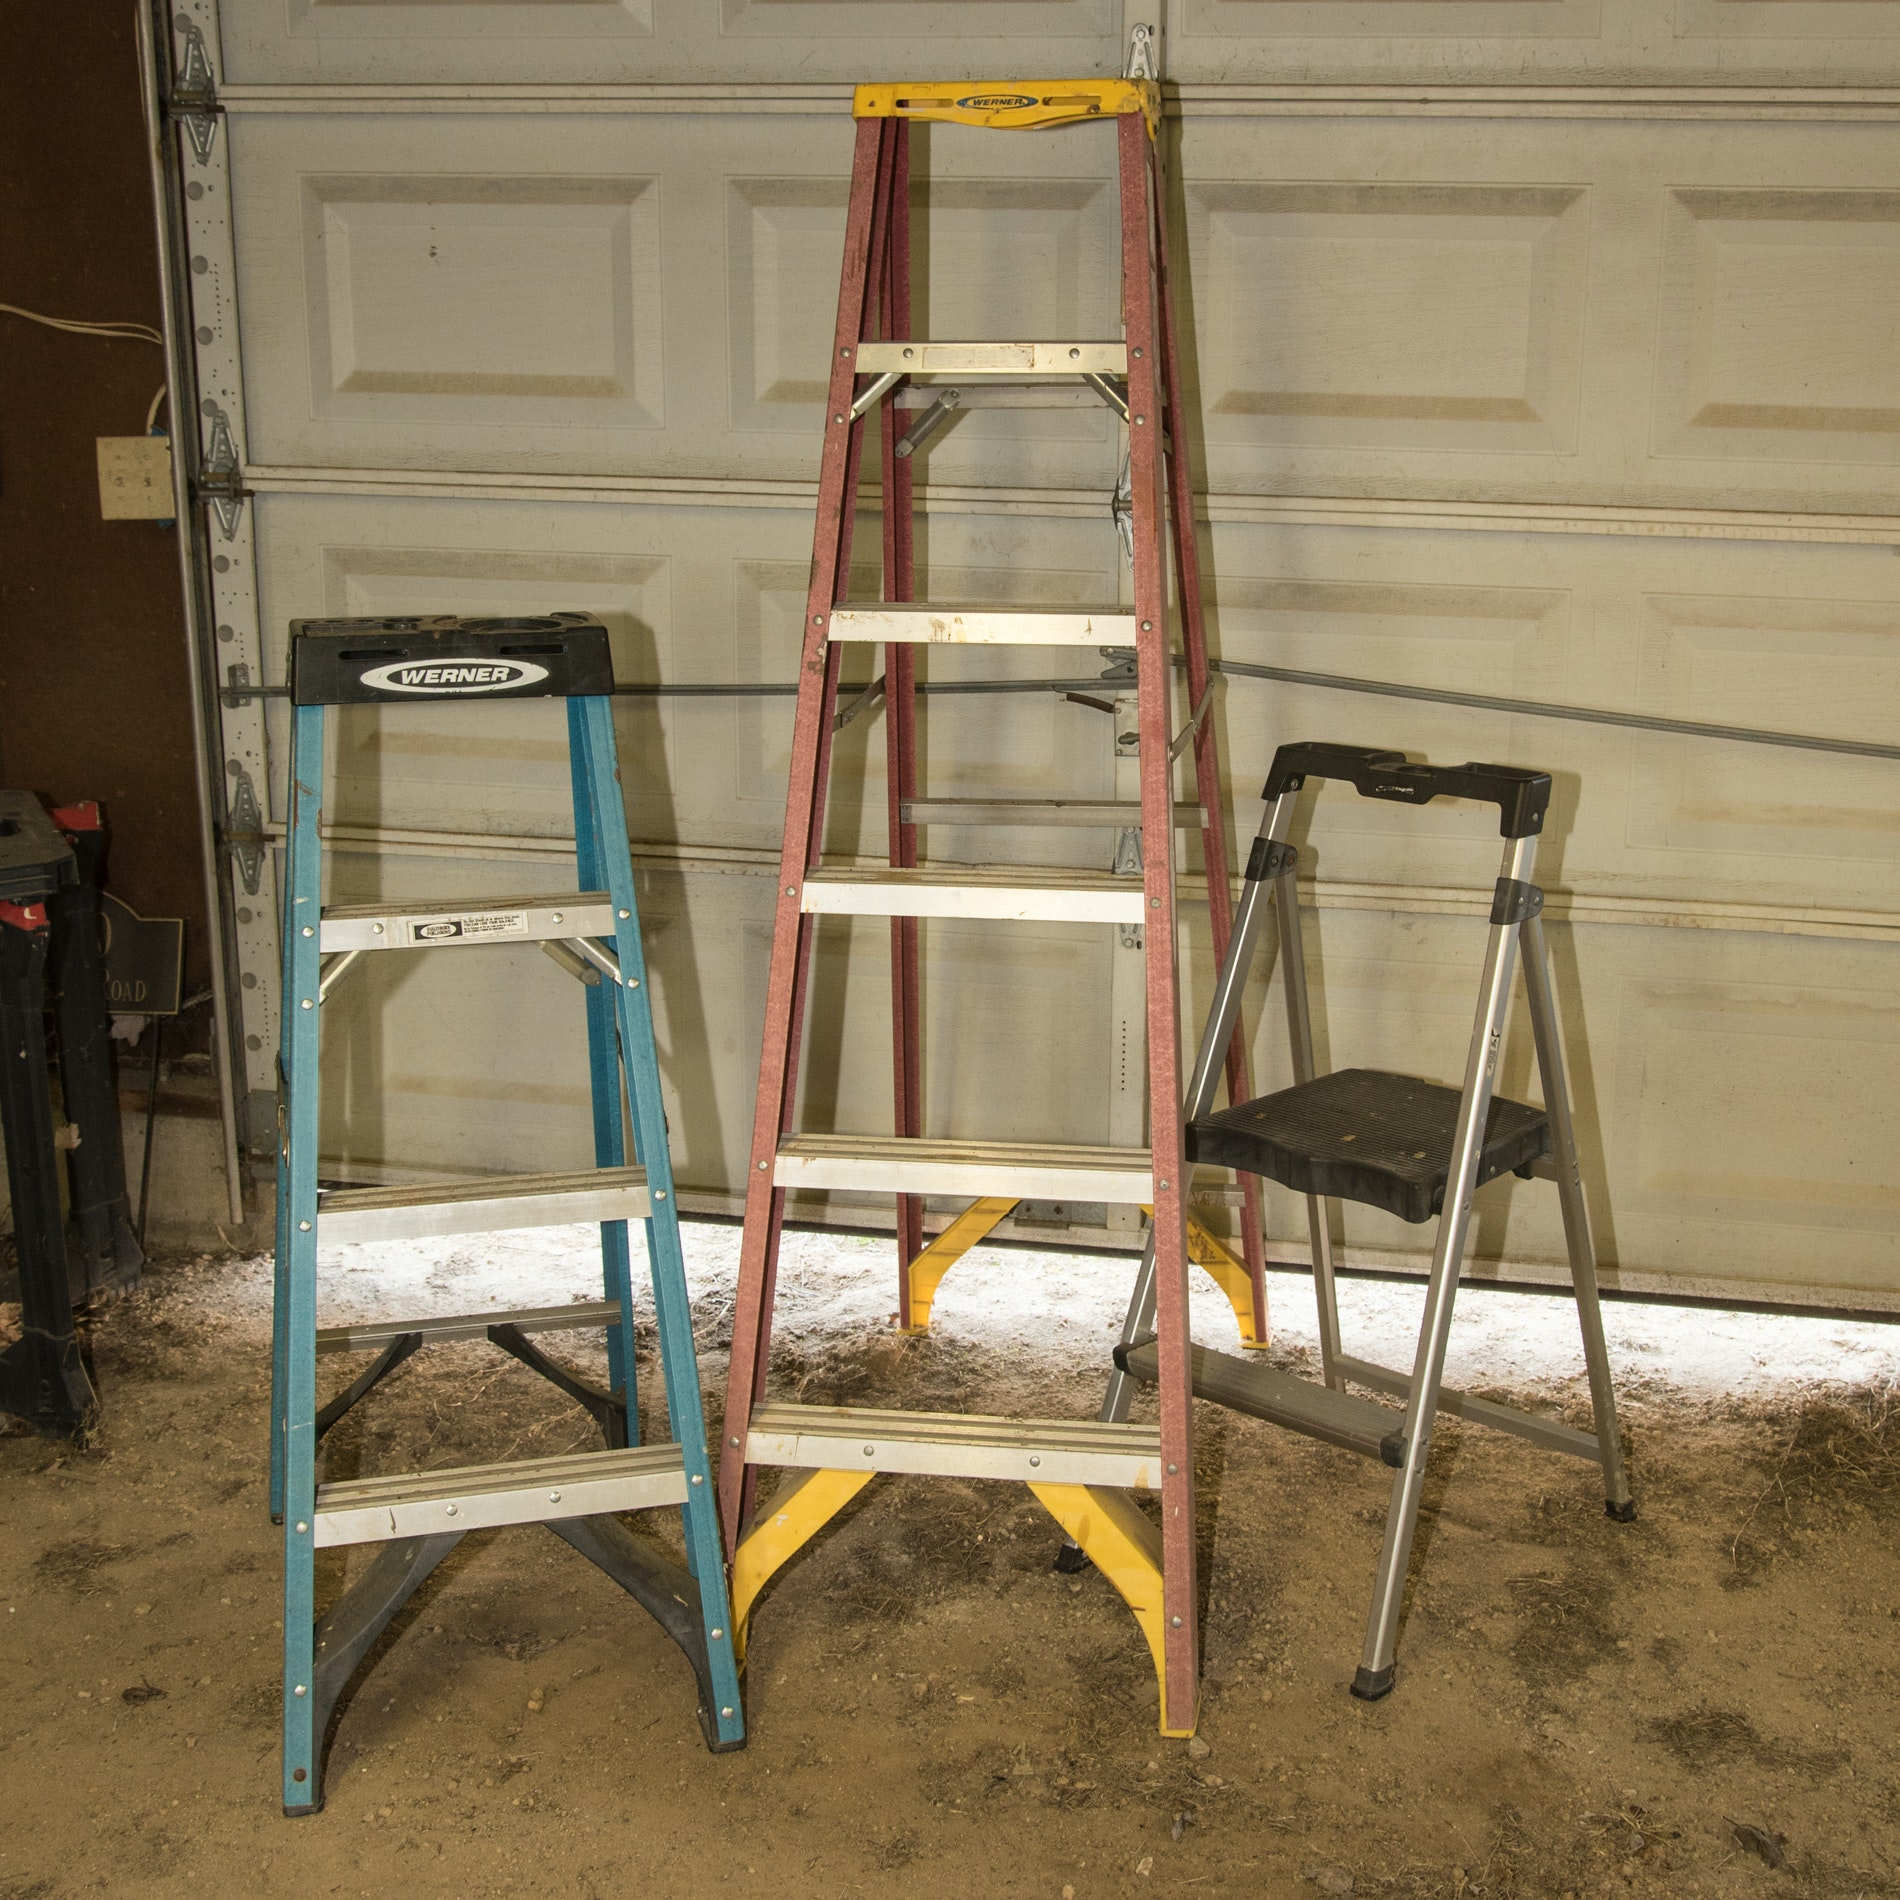 Assorted Ladders including a Werner Extension Ladder